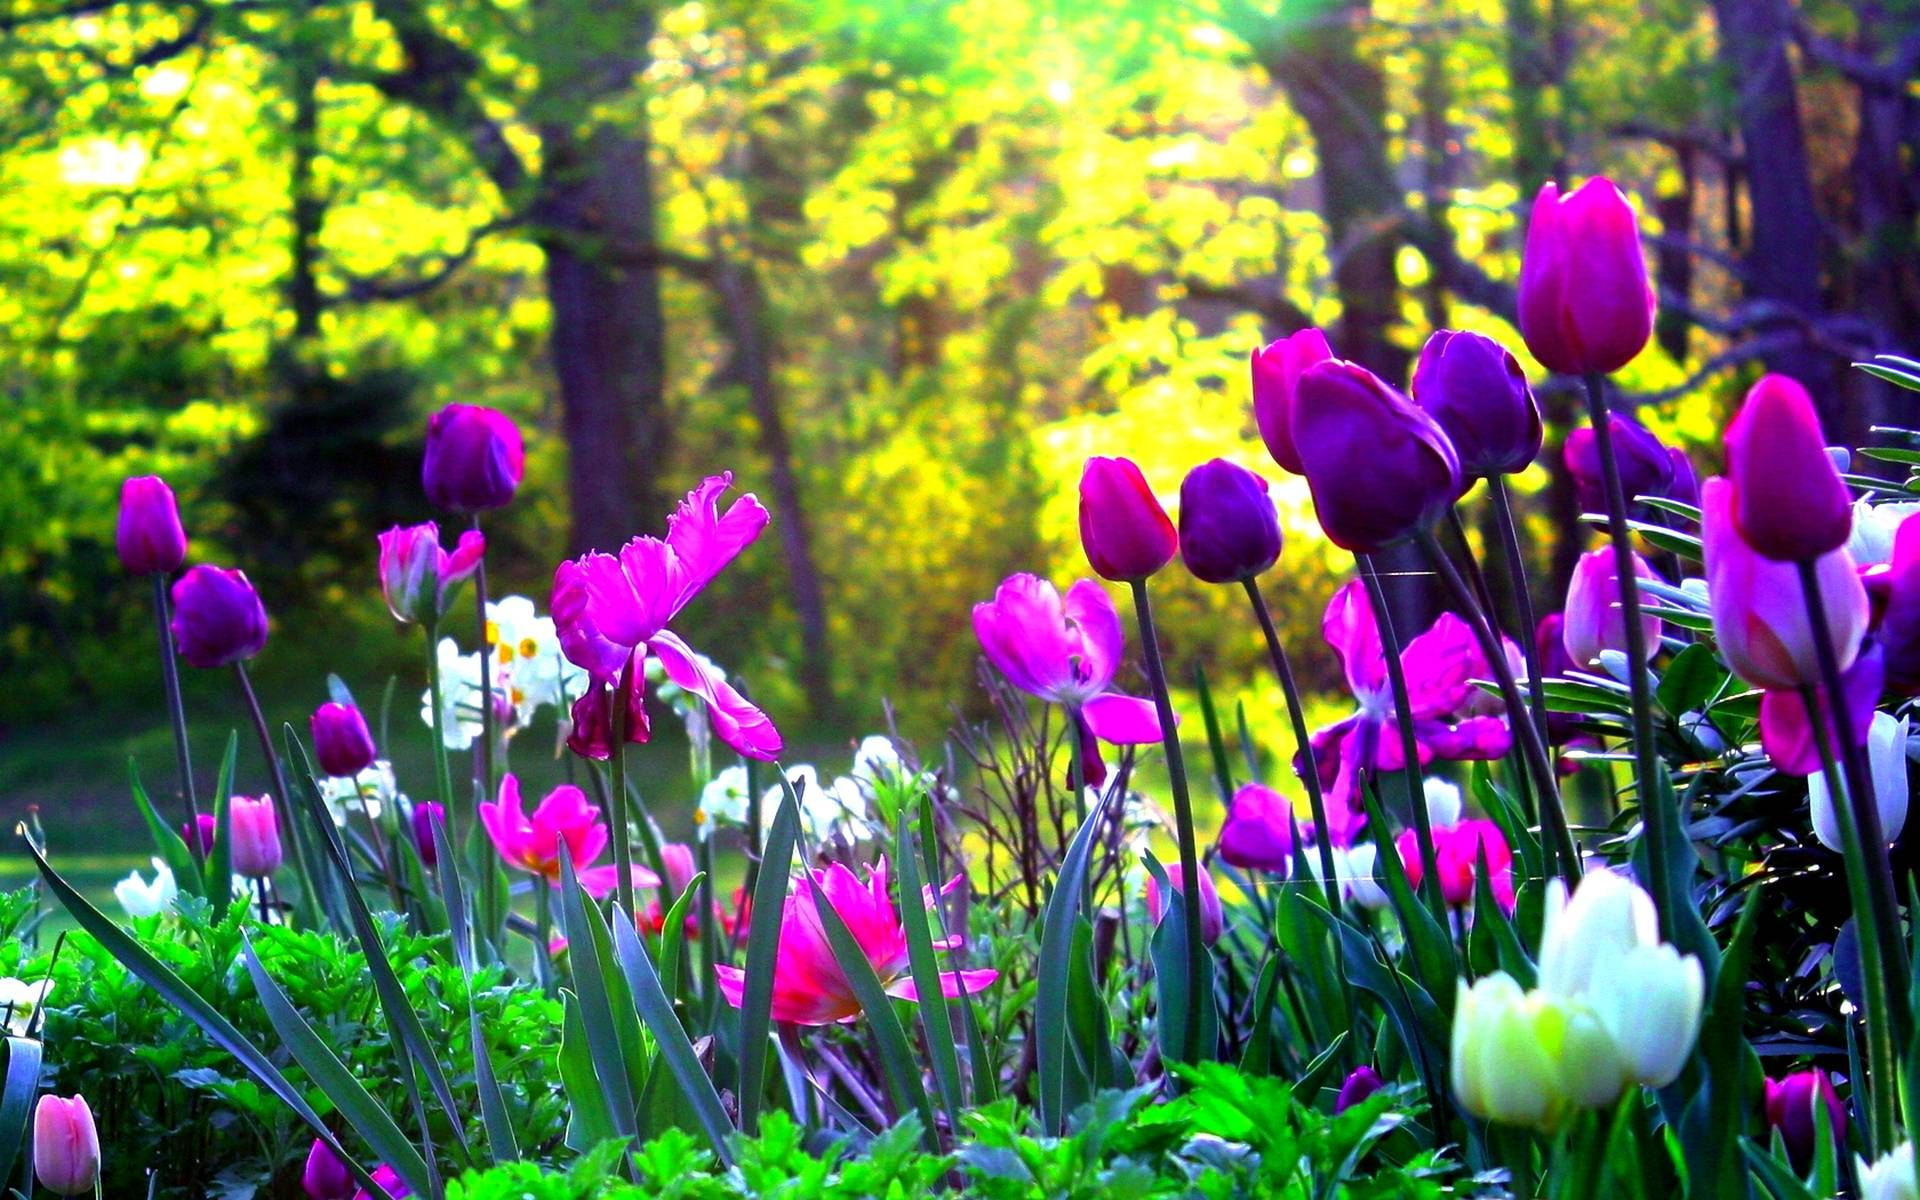 Tulip Wallpaper Android Apps on Google Play Tulips